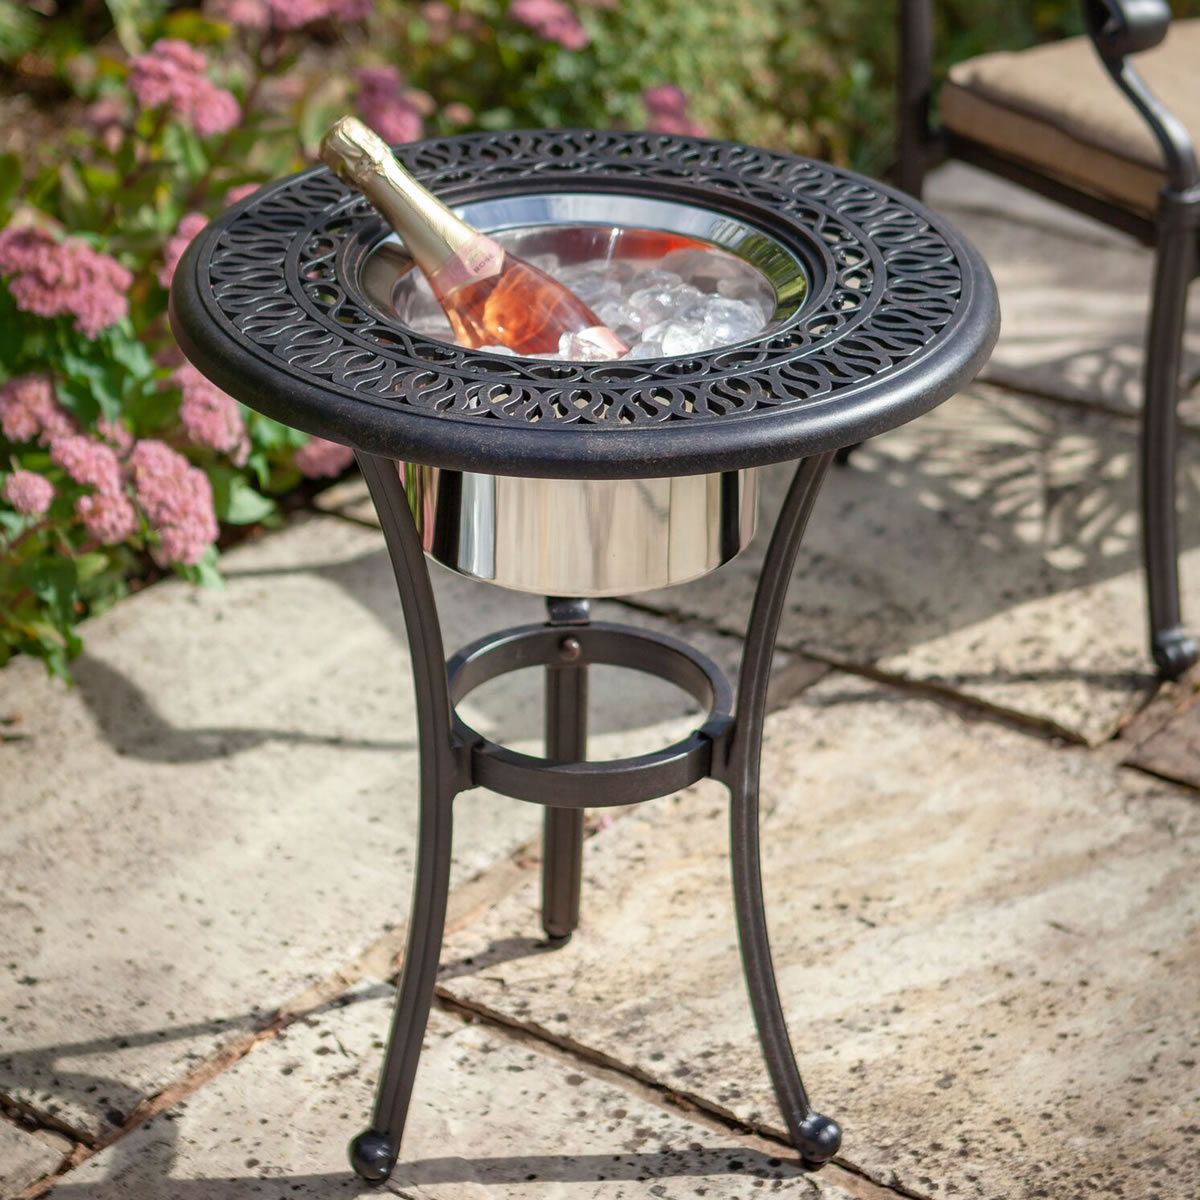 Extra image of Hartman Amalfi Bistro Table with Ice Bucket